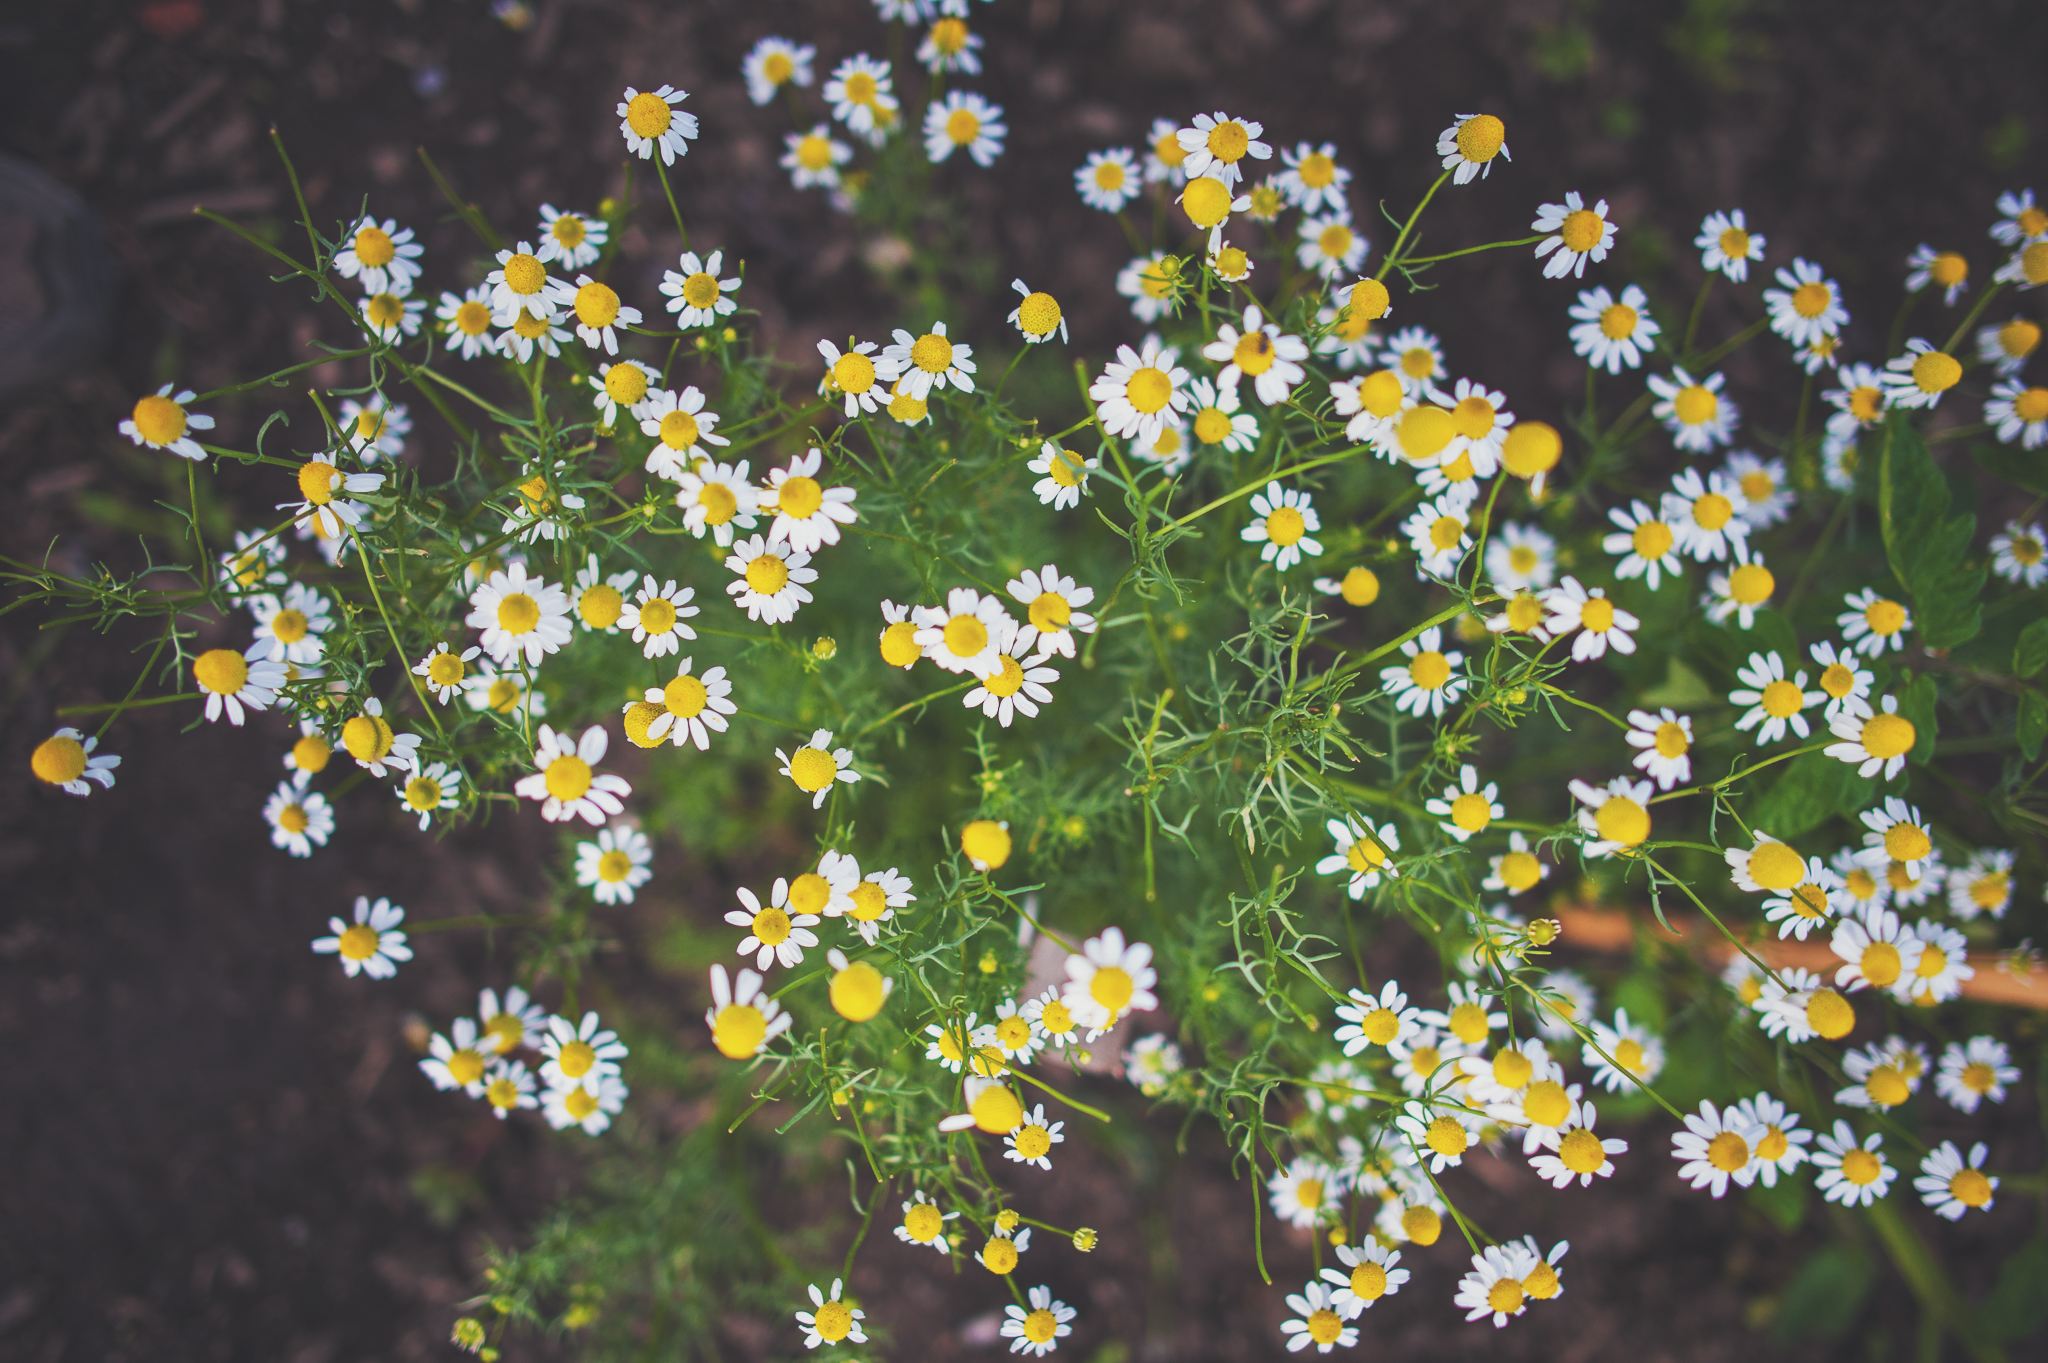 camomile-flowers-tea-herbal-montreal-botanical-garden-photographer-lifestyle-alex-tran